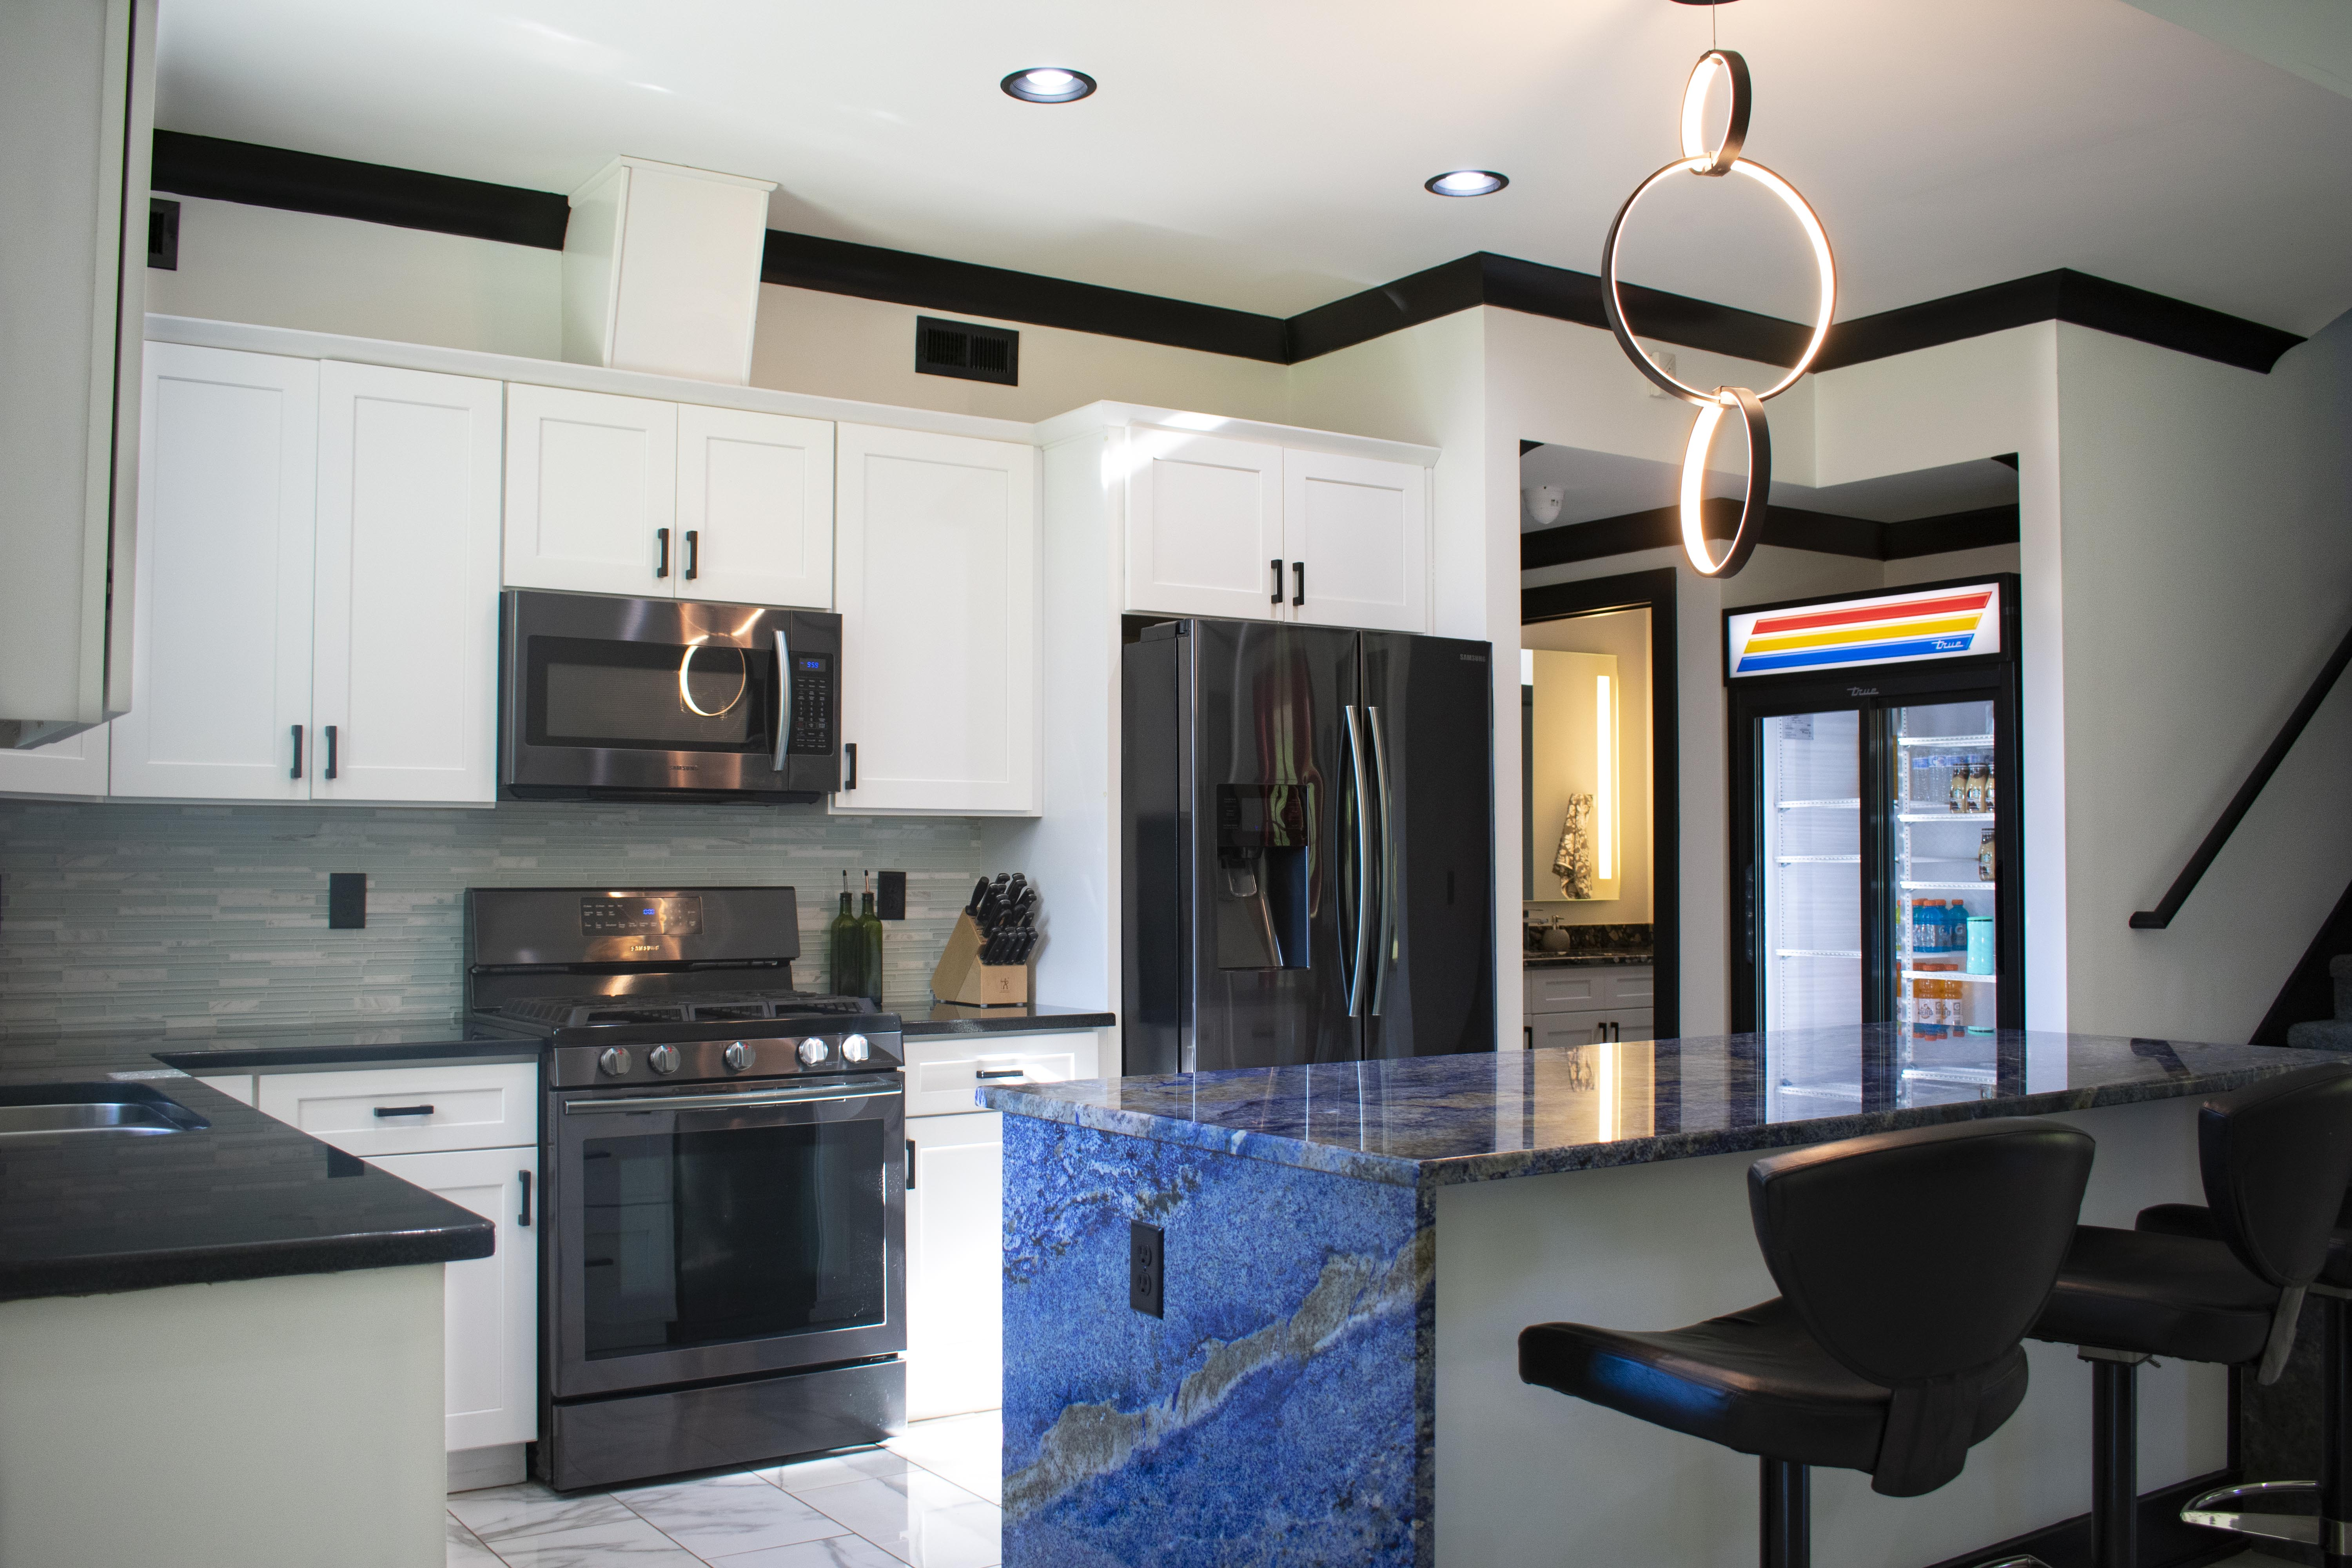 Blue Bahia granite countertops kitchen island with waterfall edges paired with white shaker cabinets and stacked tile backsplash